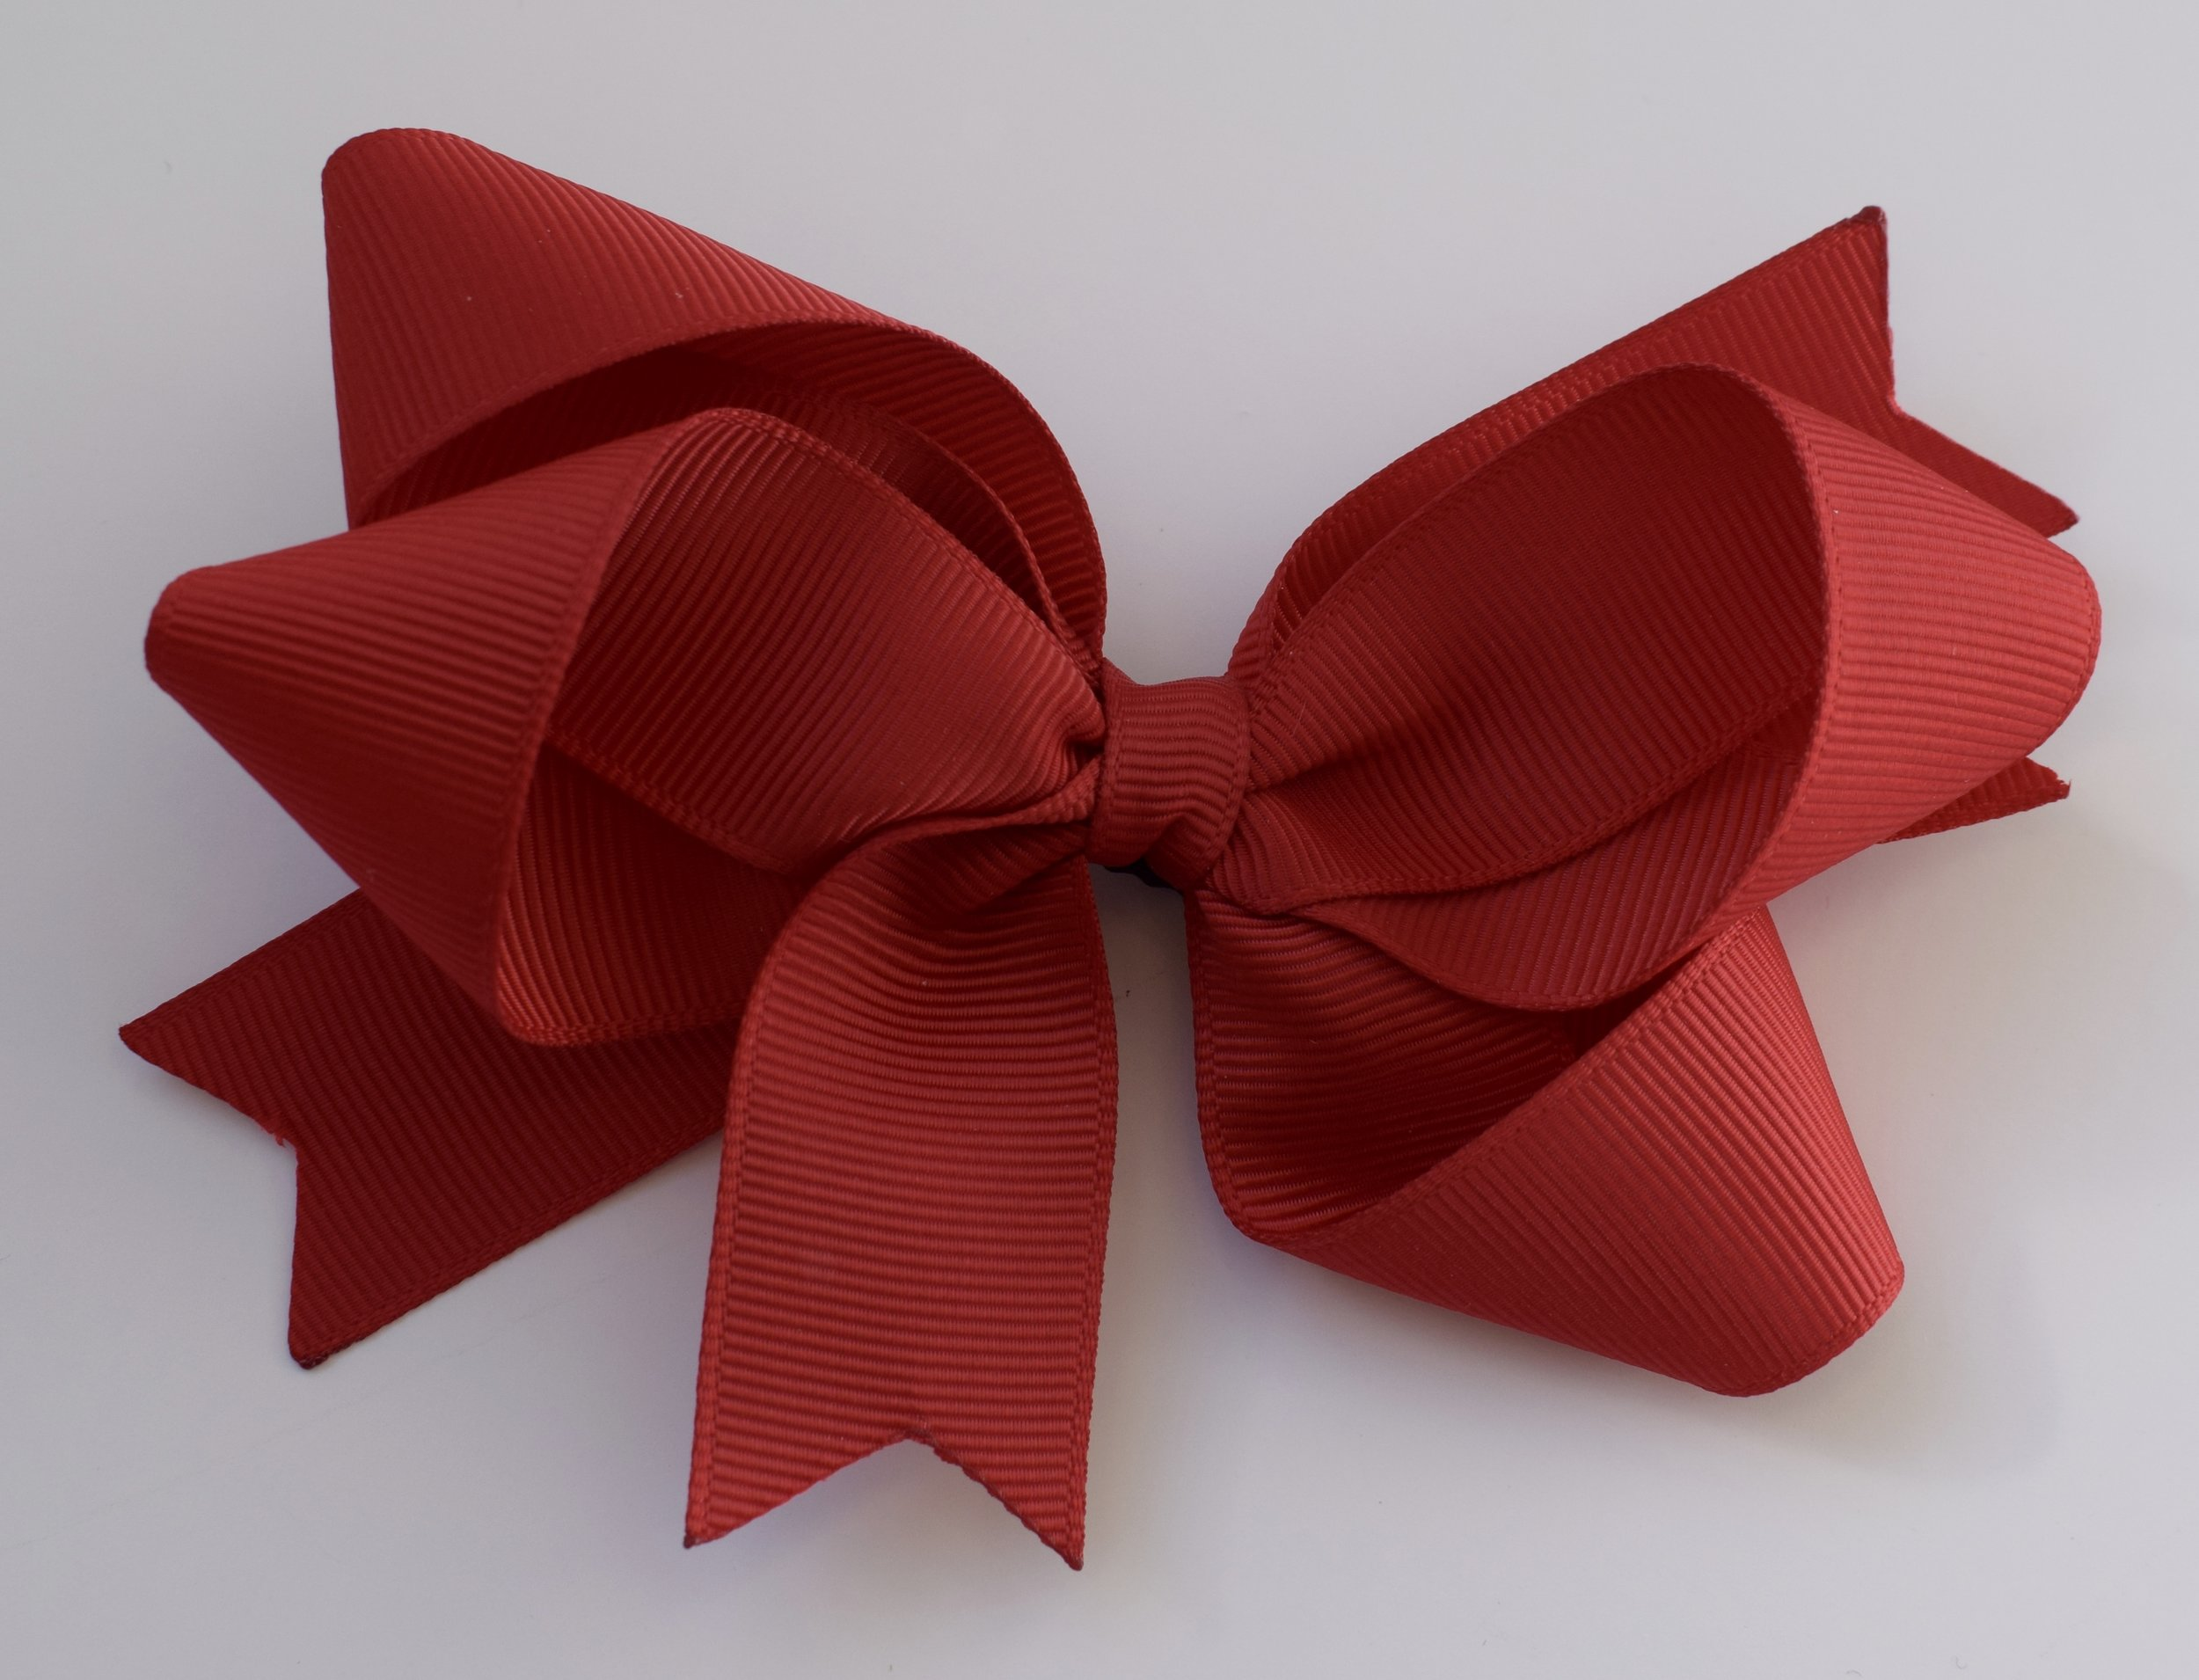 Matching red hair bows in a variety of sizes from £3